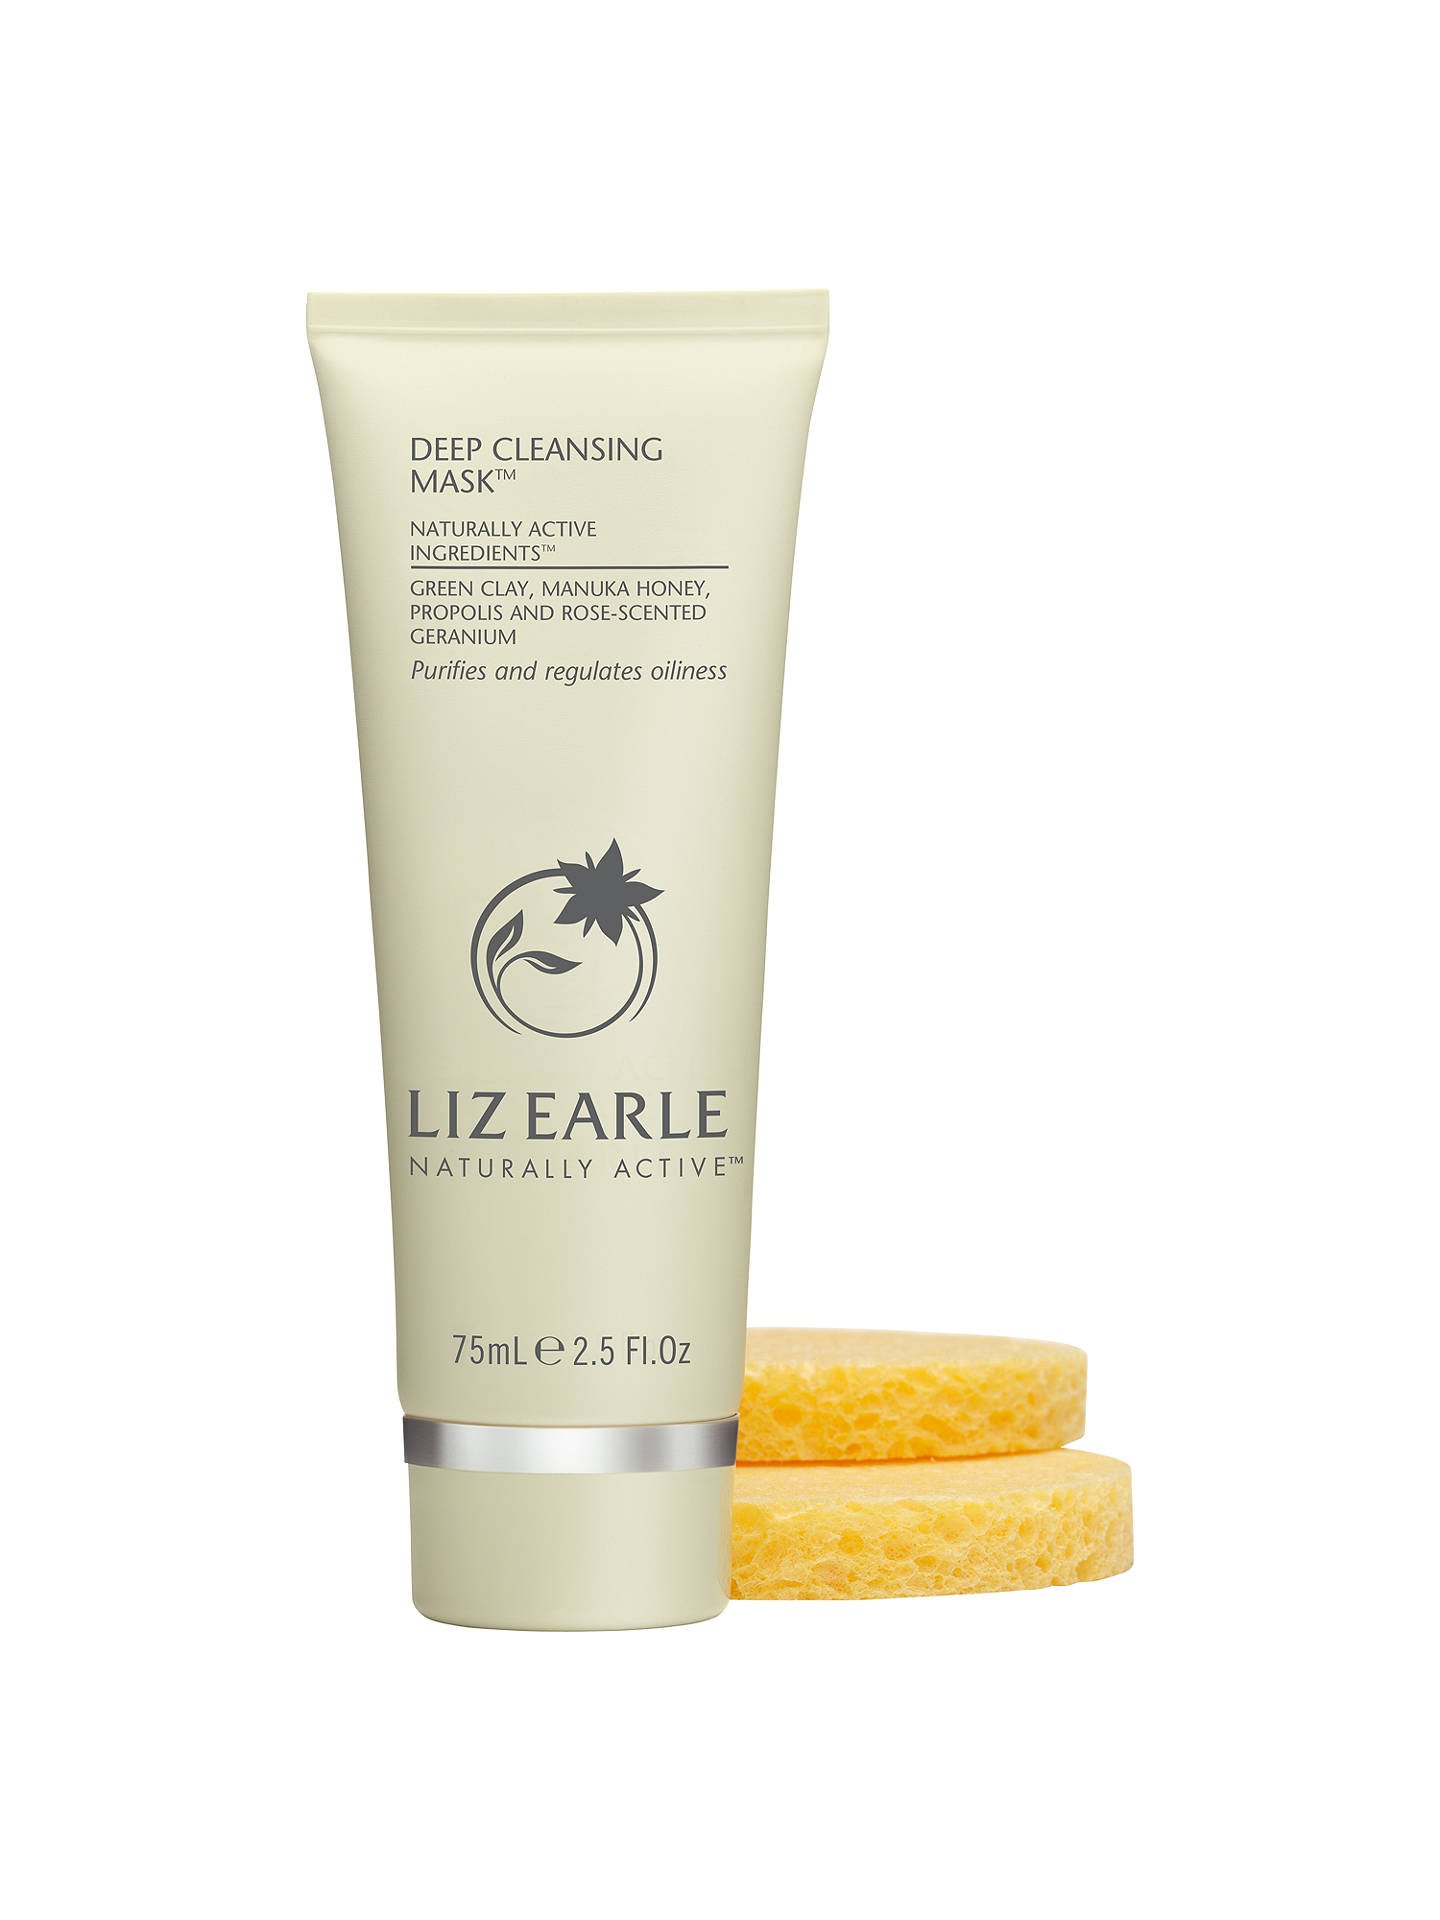 BuyLiz Earle Deep Cleansing Mask™, 75ml with 2 Sponges Online at johnlewis.com